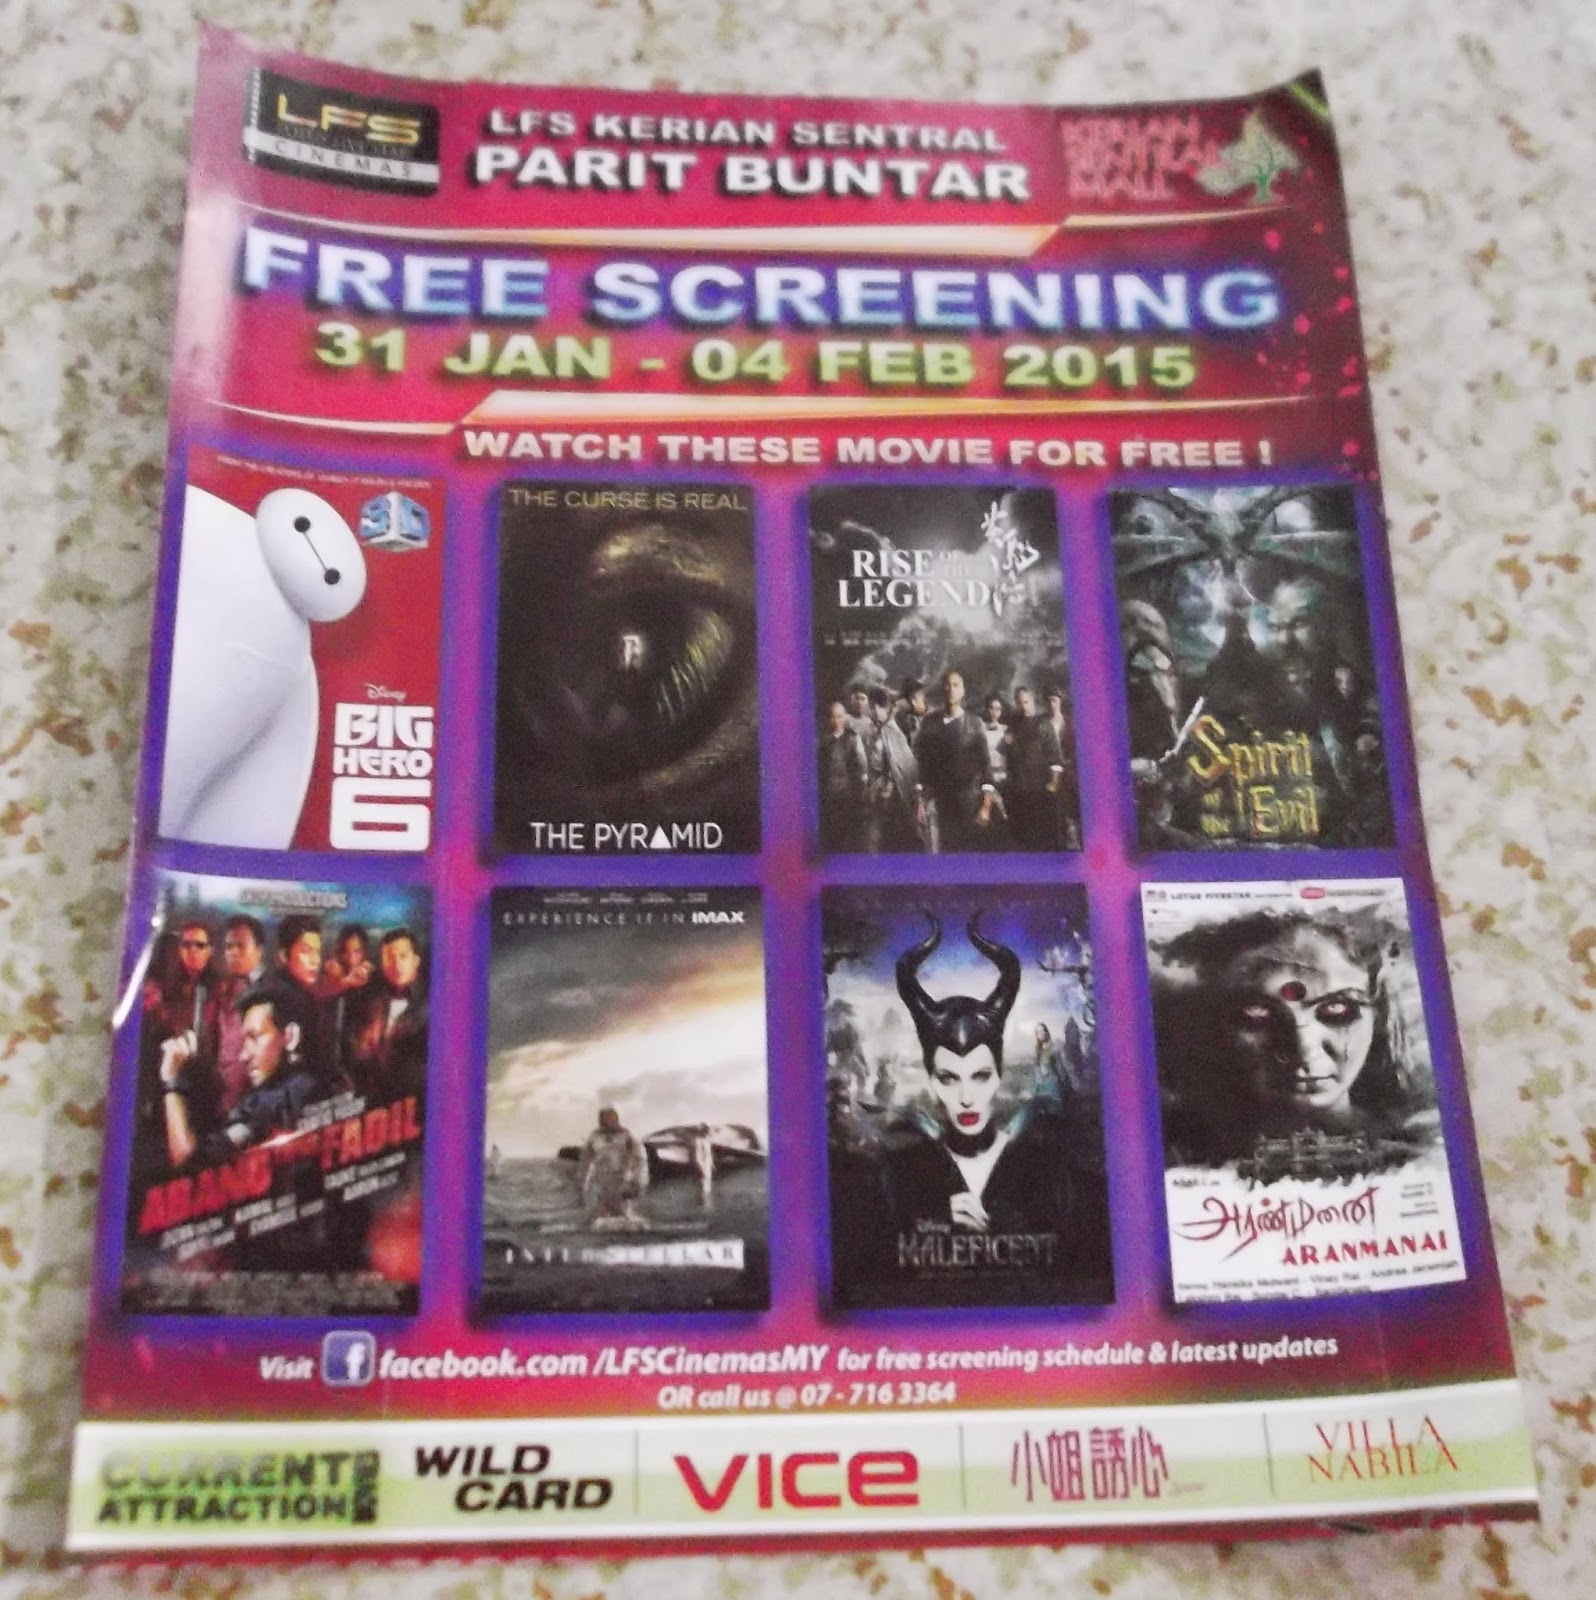 Movie for free at Kerian Sentral Mall